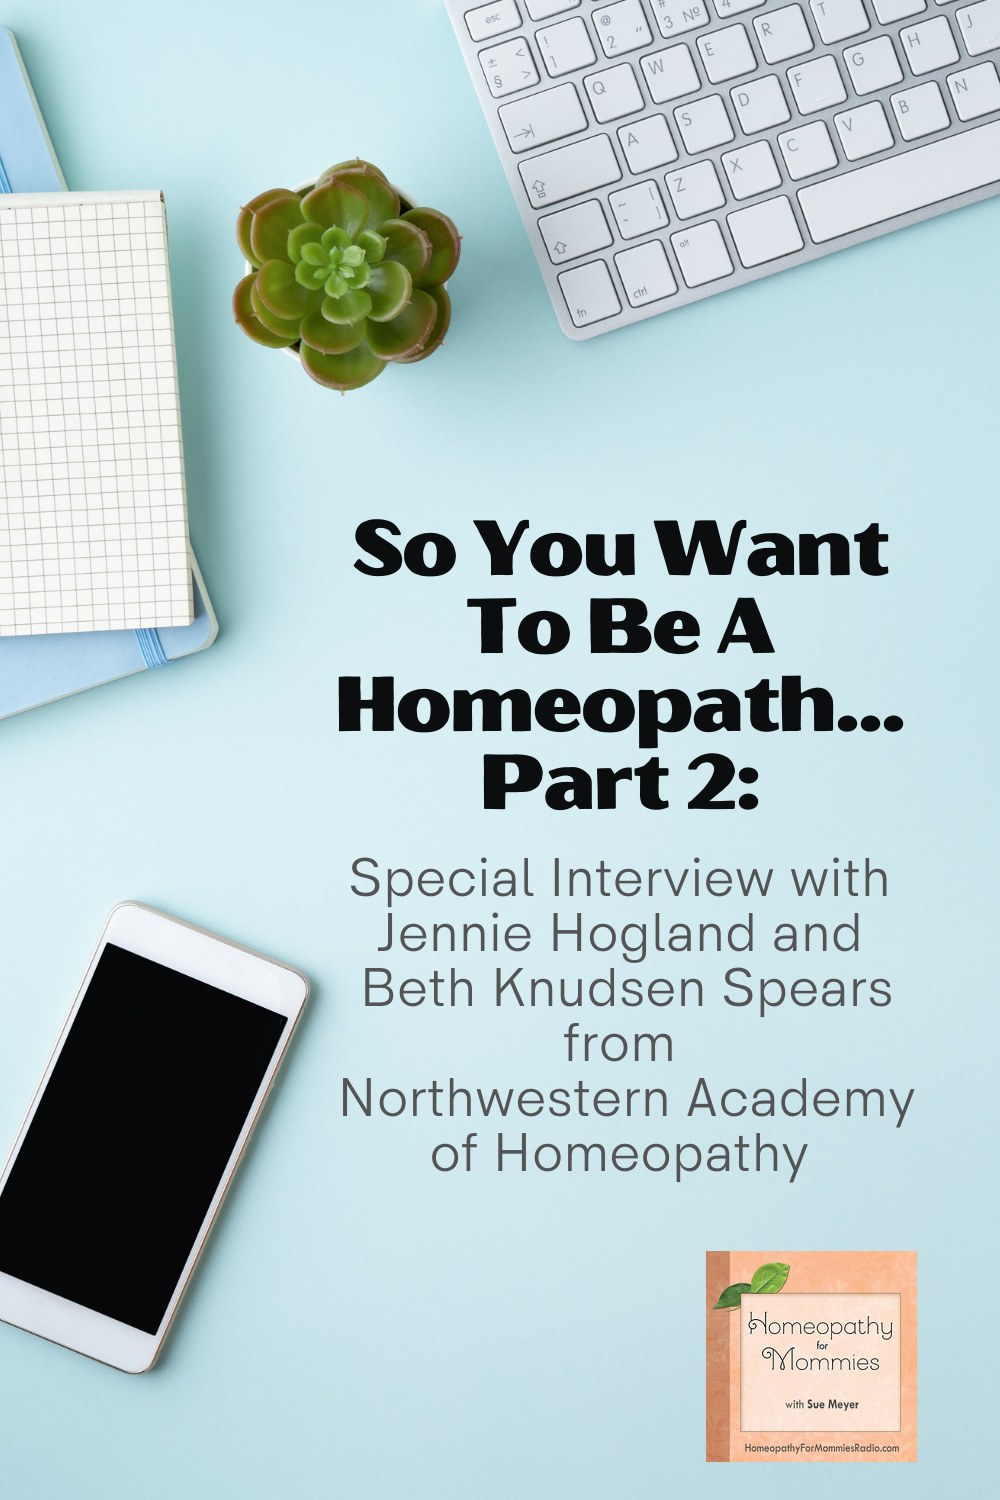 Welcome to part 2 in the Homeopathy School Options series! In this episode we are speaking with Jennie Hogland and Beth Knudsen Spears from Northwestern Academy of Homeopathy.